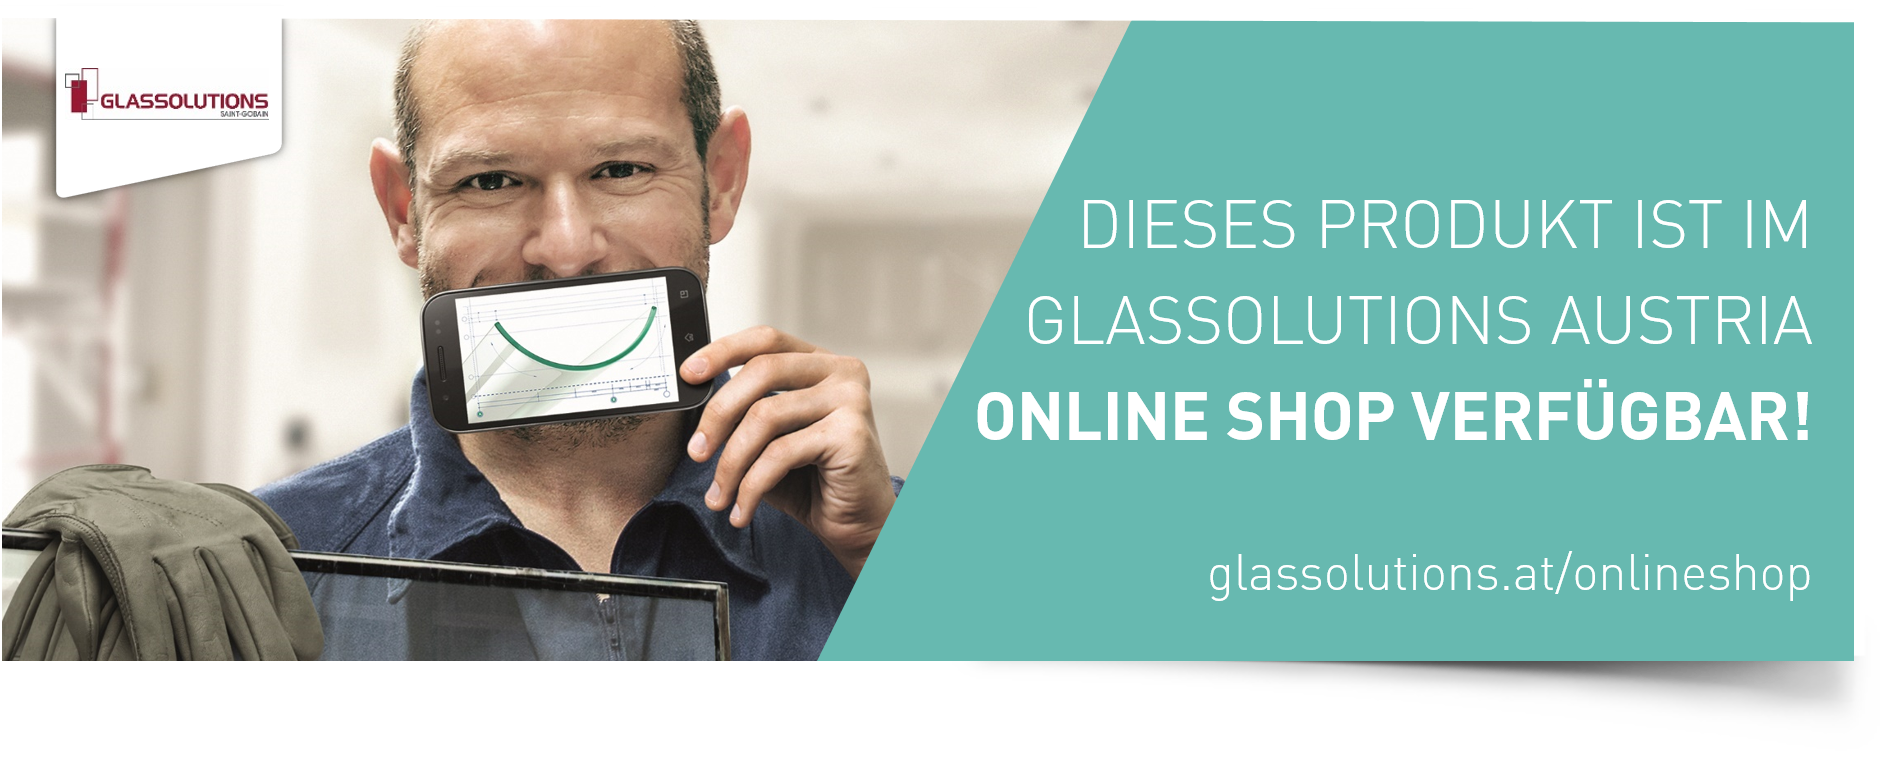 online Shop Glassolutions Austria